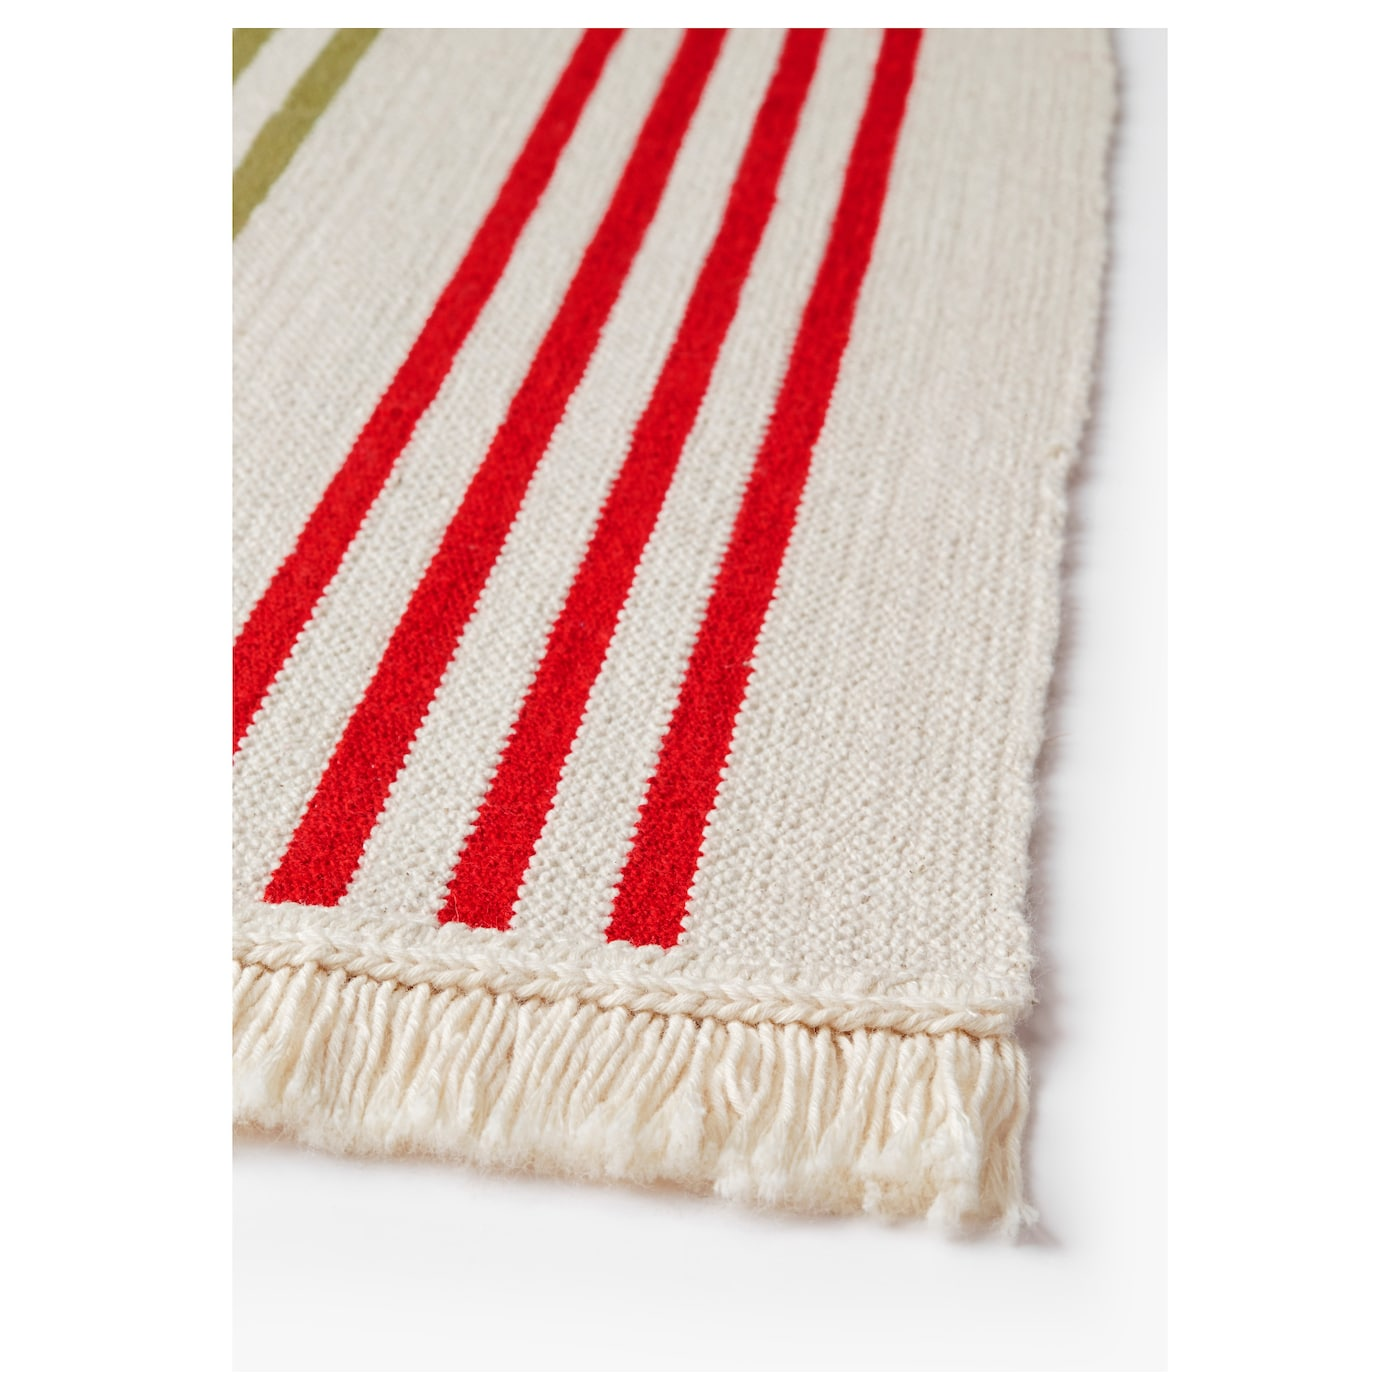 Ikea Signe Rug Flatwoven Easy To Keep Clean Since It Is Machine Washable